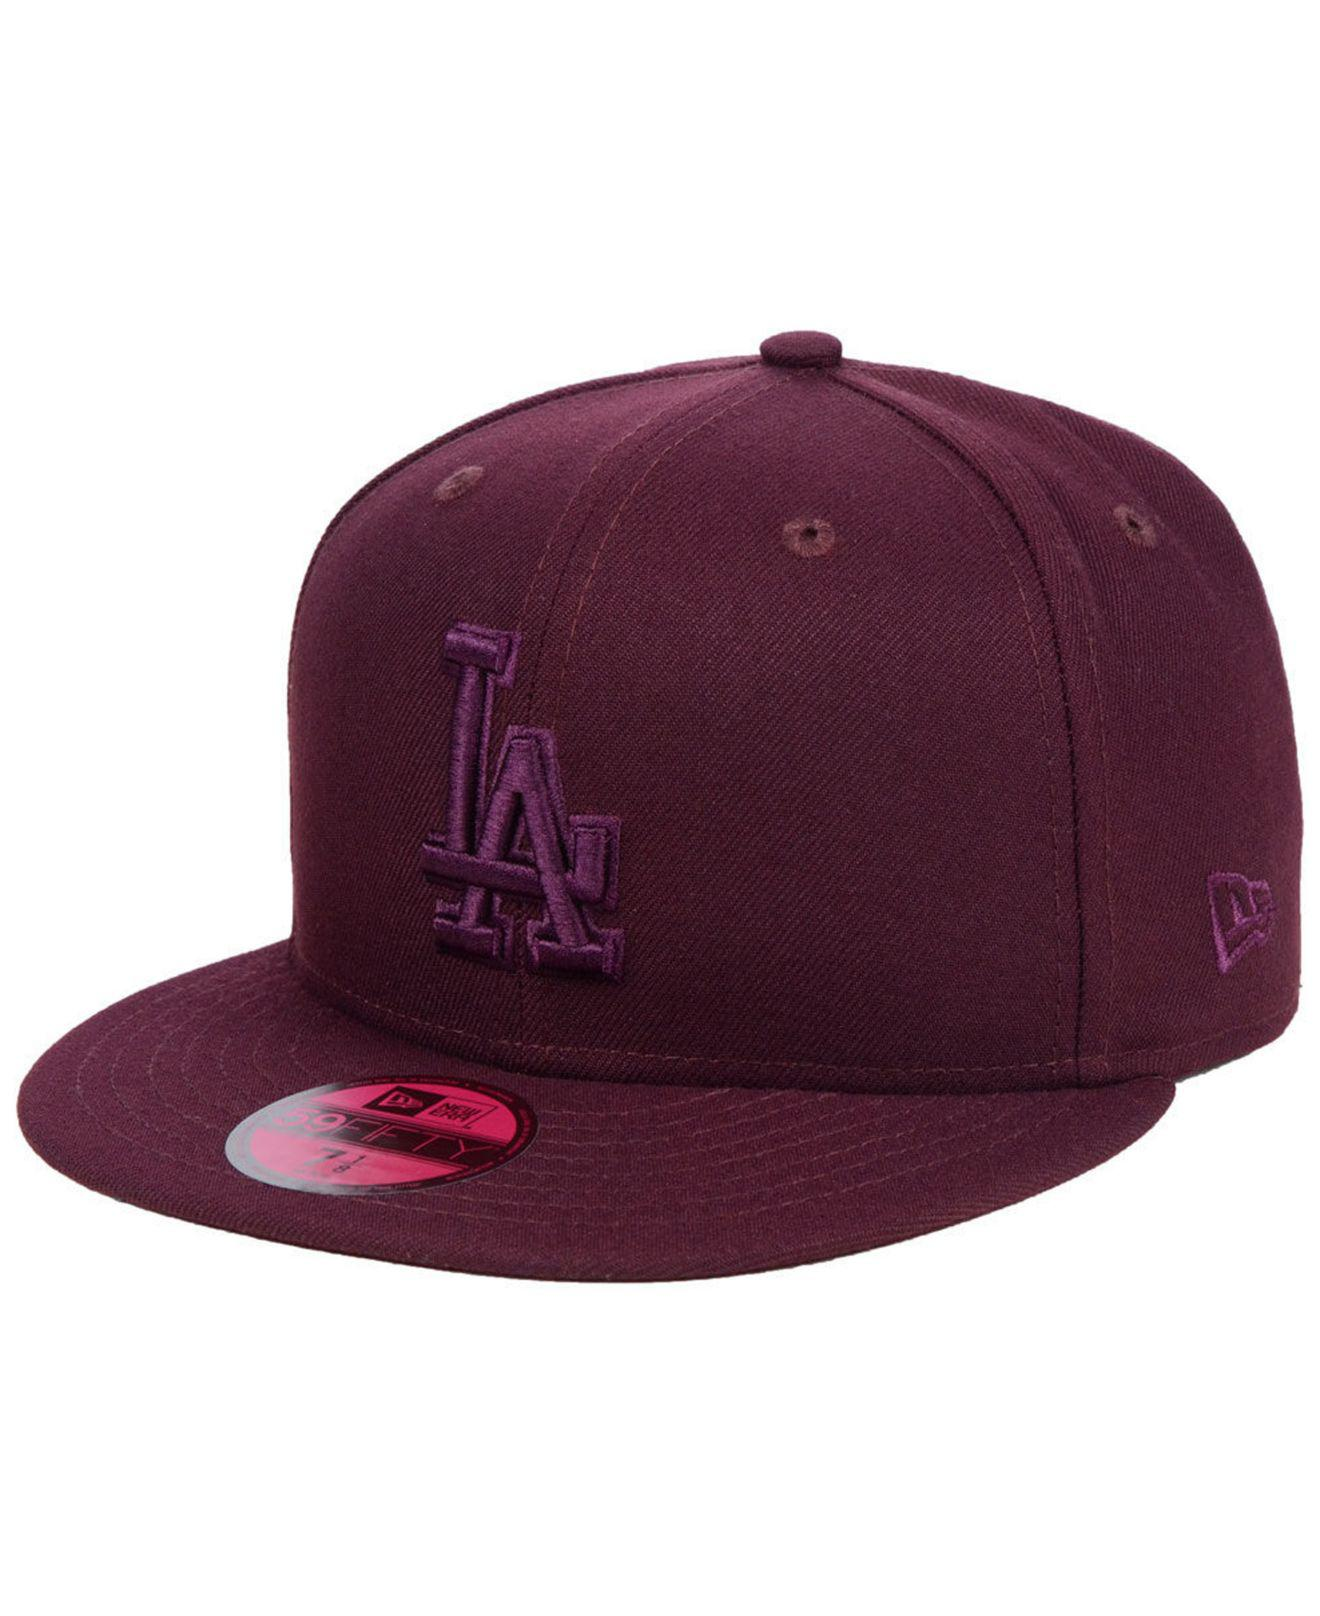 online retailer bc141 b5abb ... new era mlb color prism pack 59fifty cap fa0cb d4c99  best ktz. mens  purple los angeles dodgers fall prism pack 59fifty fitted cap d1b94 66aad